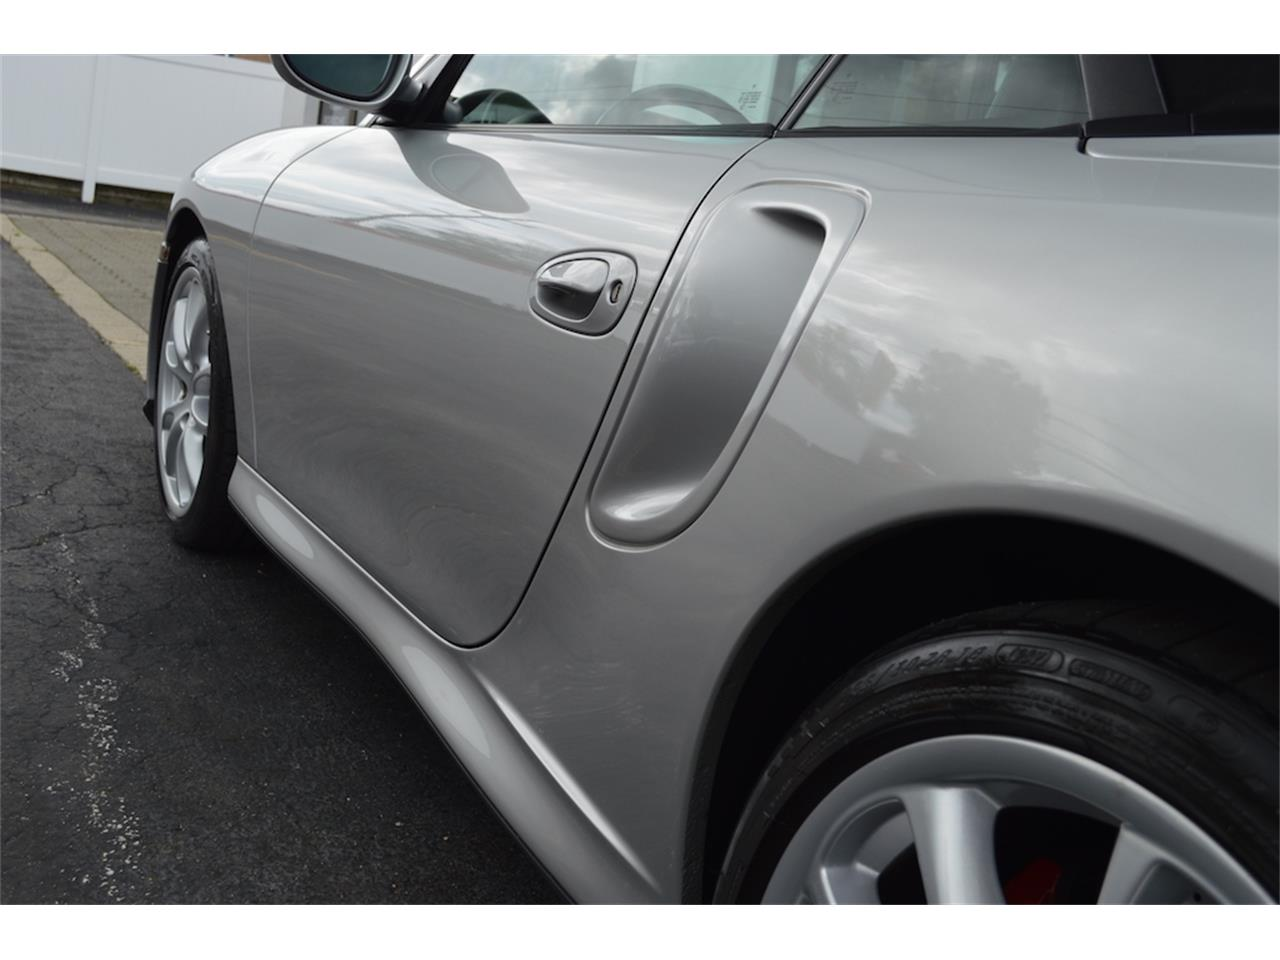 Large Picture of '04 996 Turbo Cabriolet located in West Chester Pennsylvania - $46,500.00 - NQV0